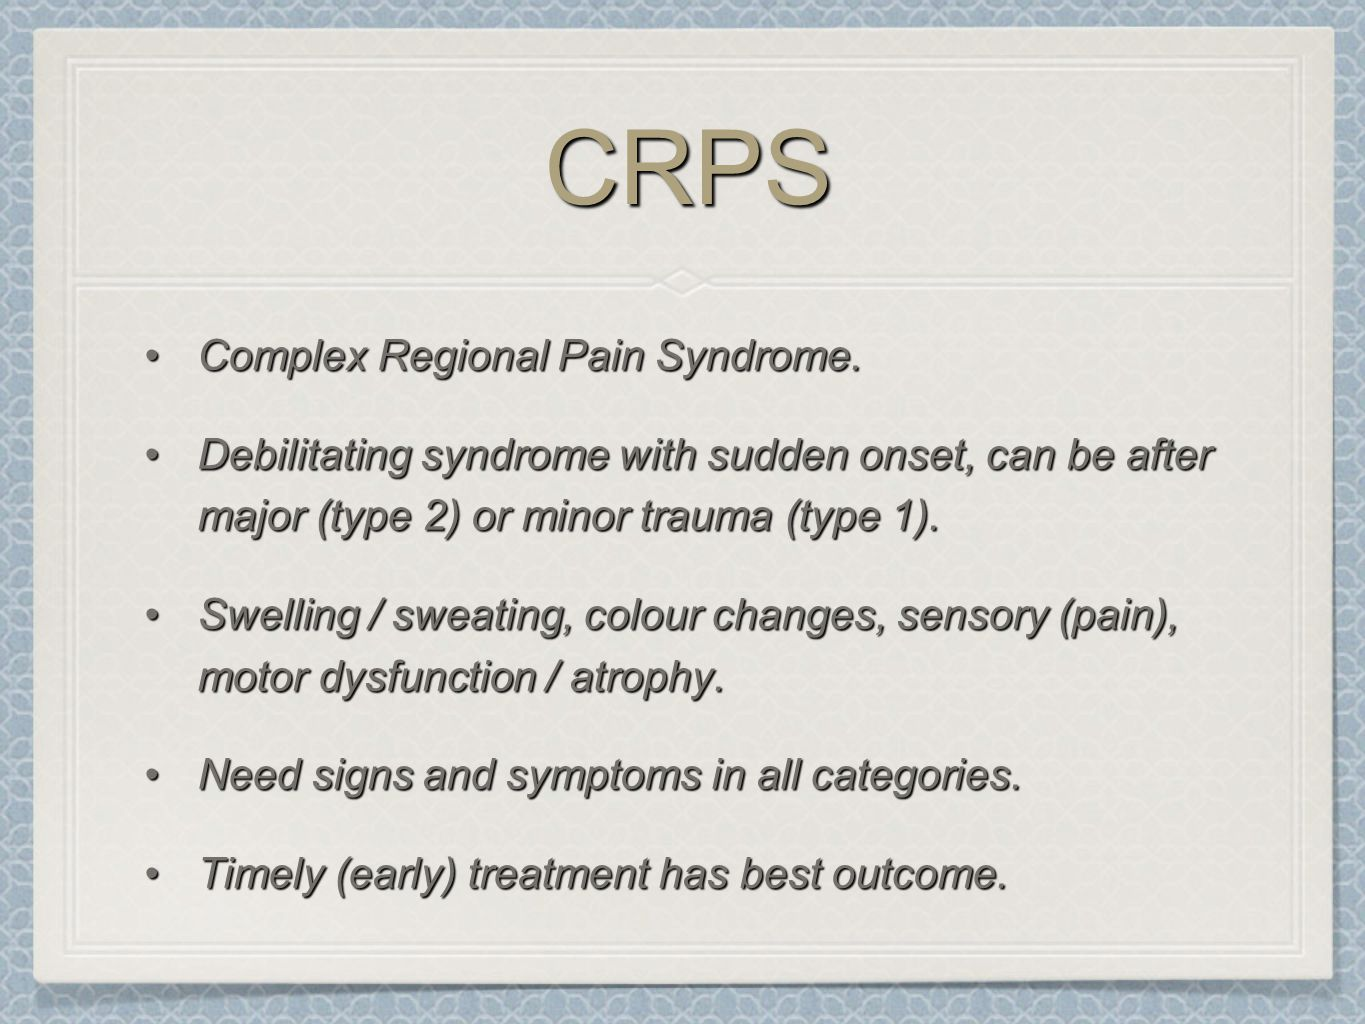 CRPS Complex Regional Pain Syndrome.